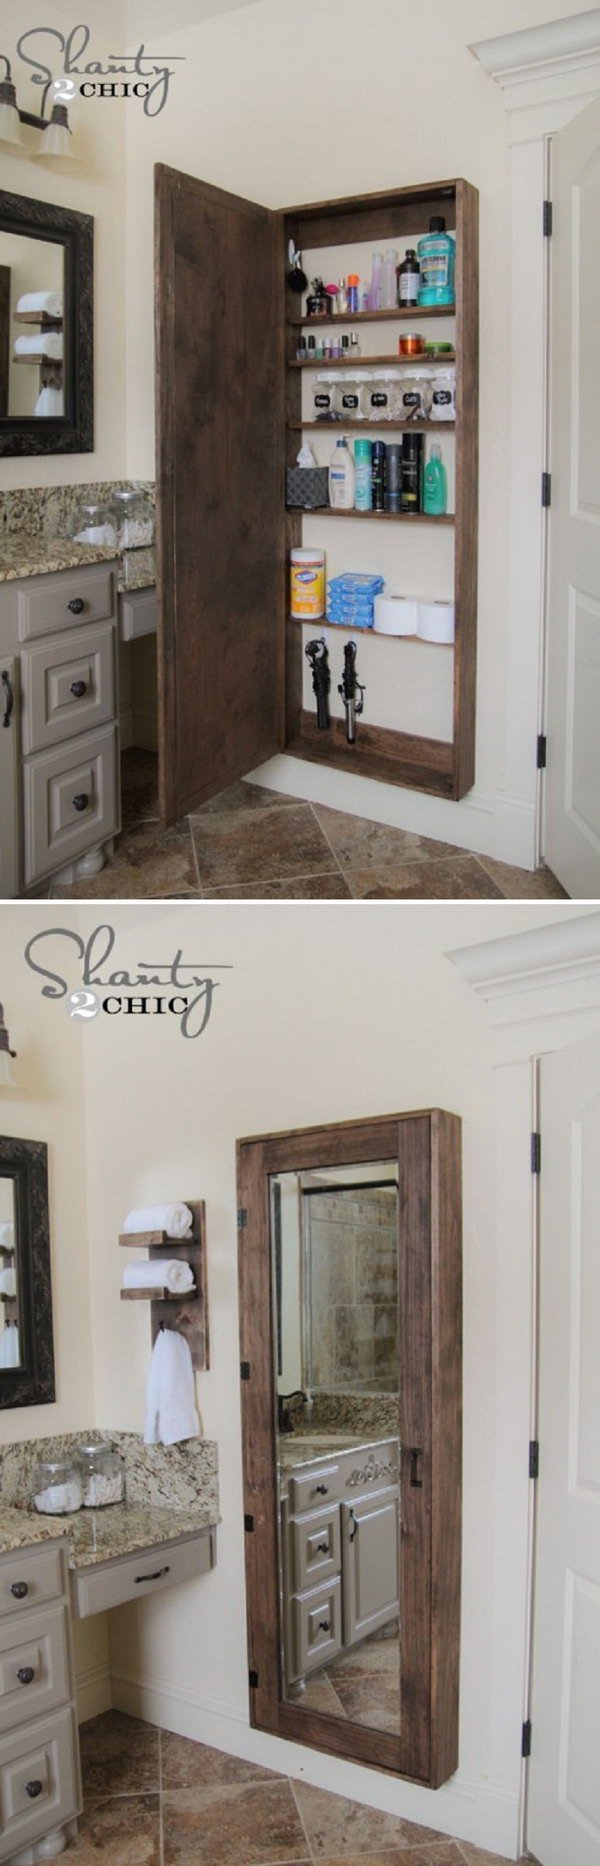 10-hidden-storage-ideas